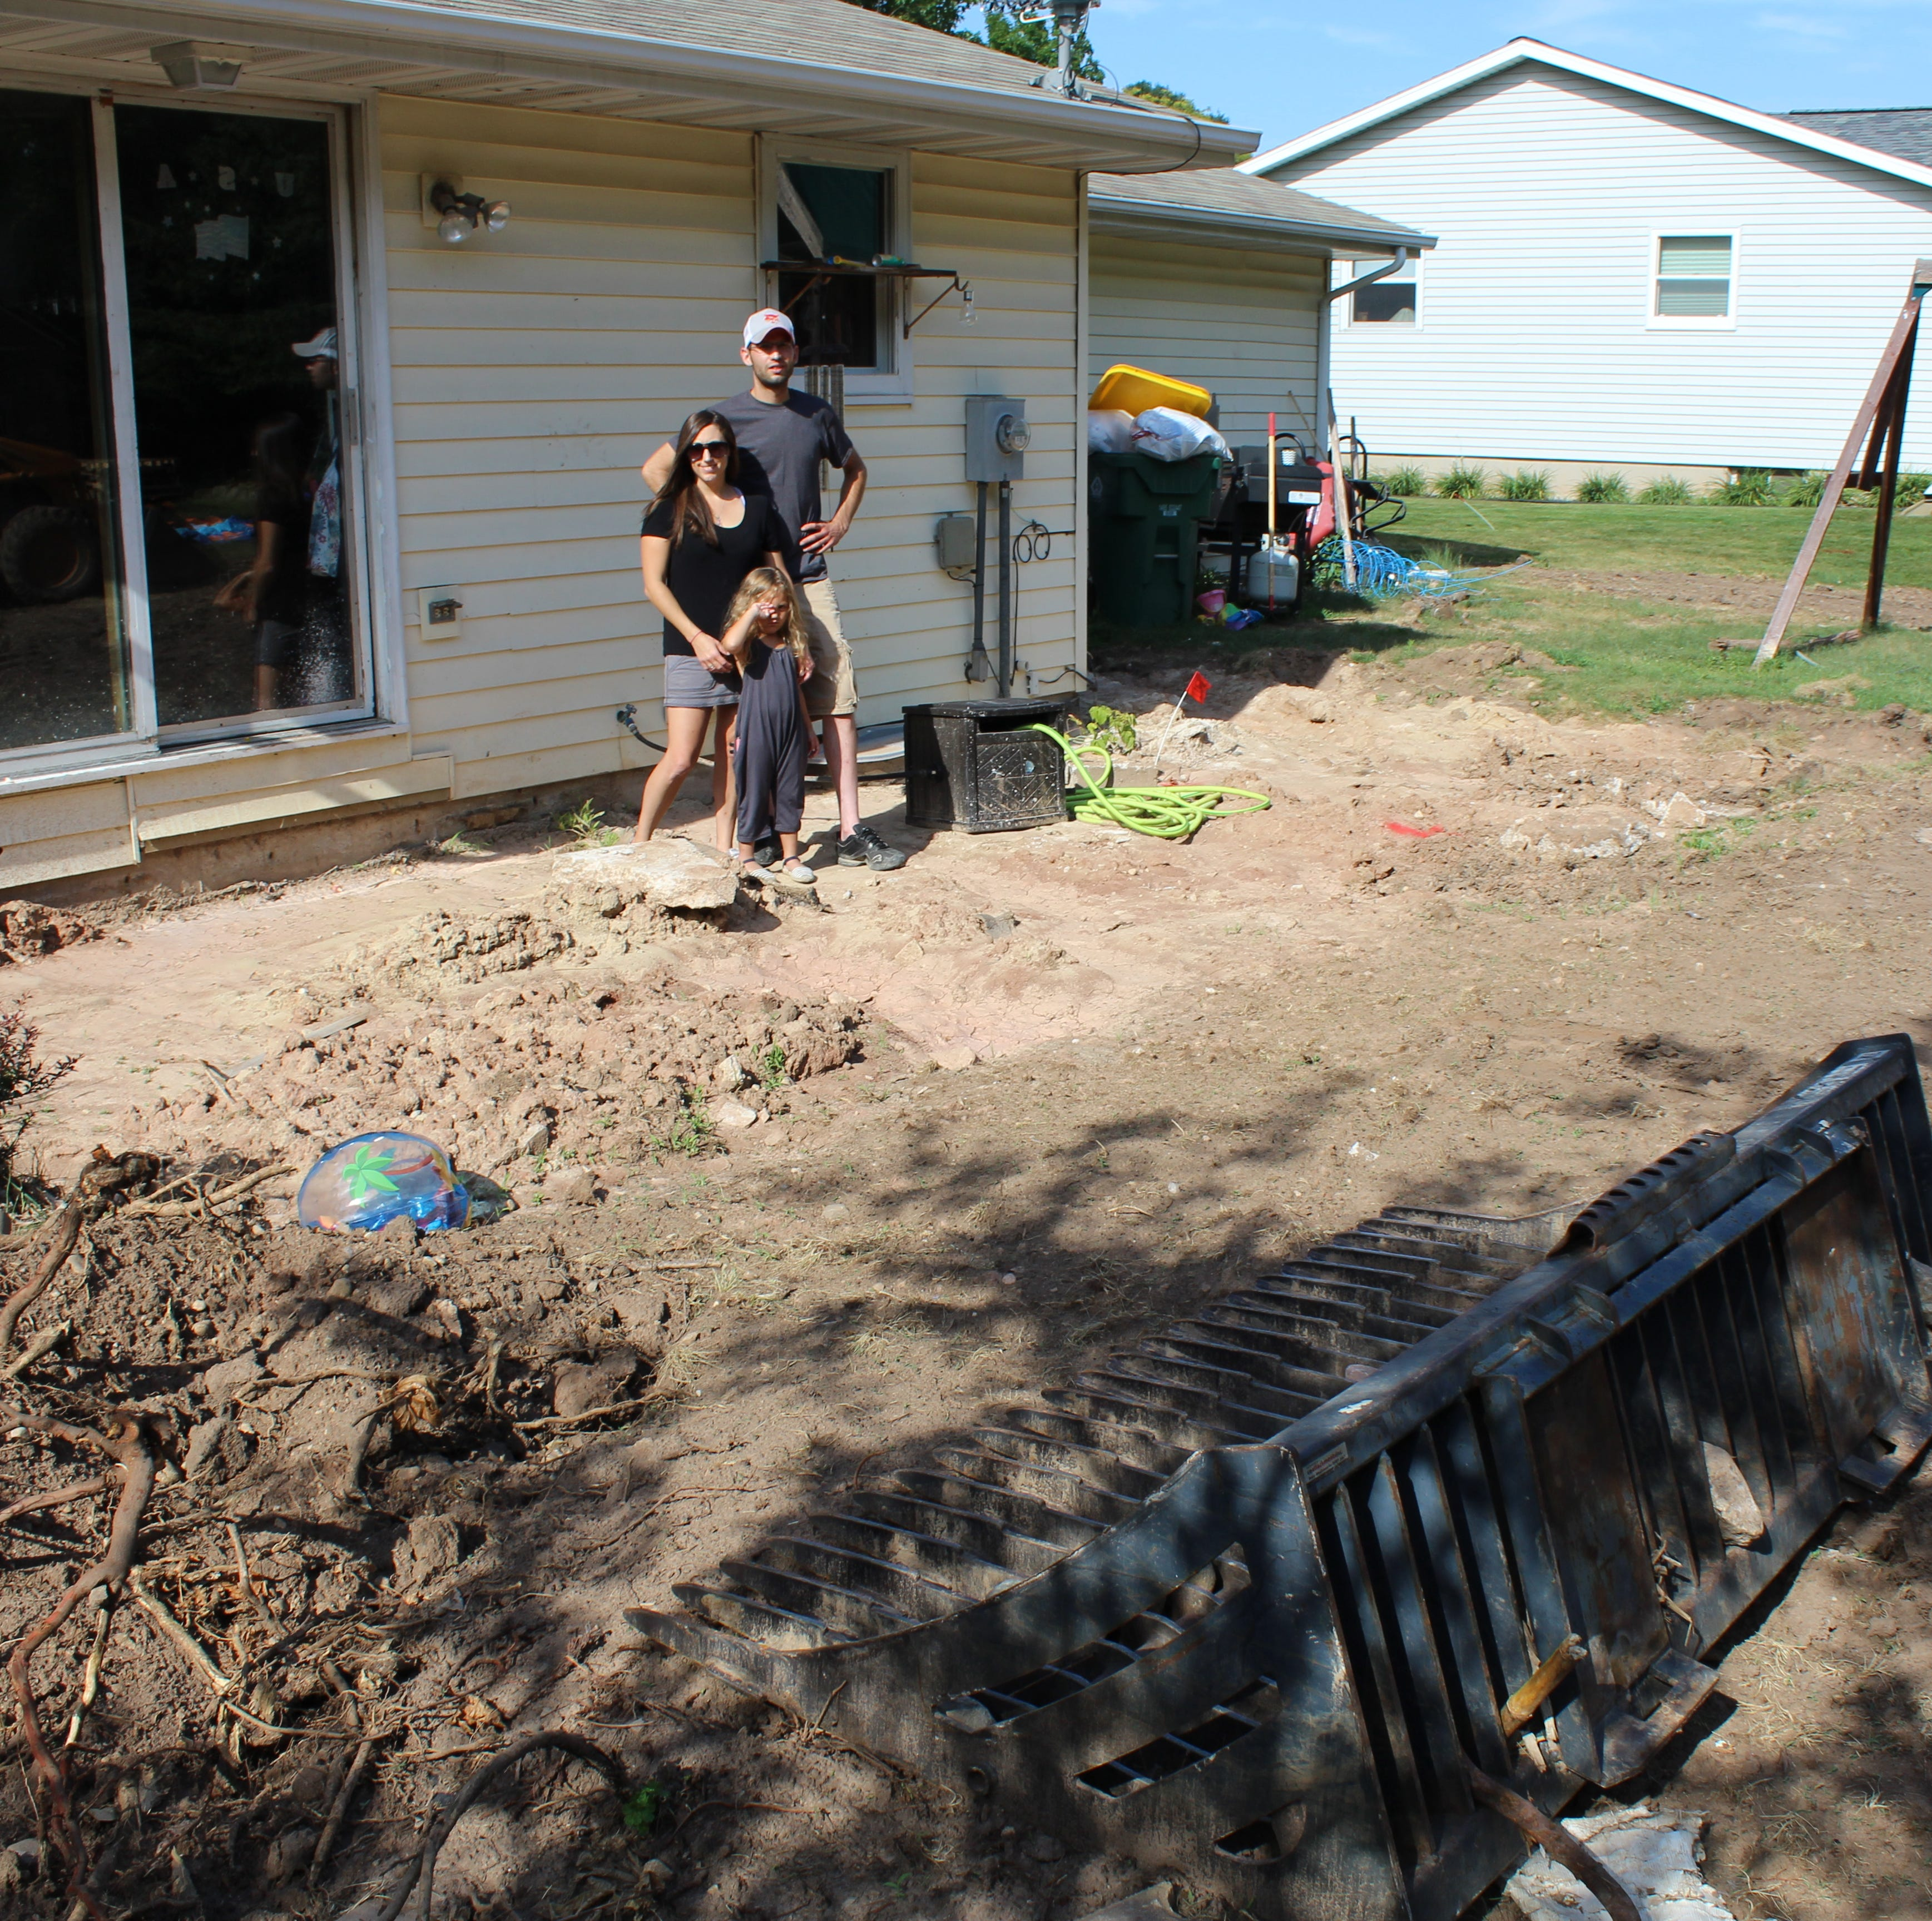 A broken water main wreaked havoc on their homes. Should Green Bay pay for repairs?